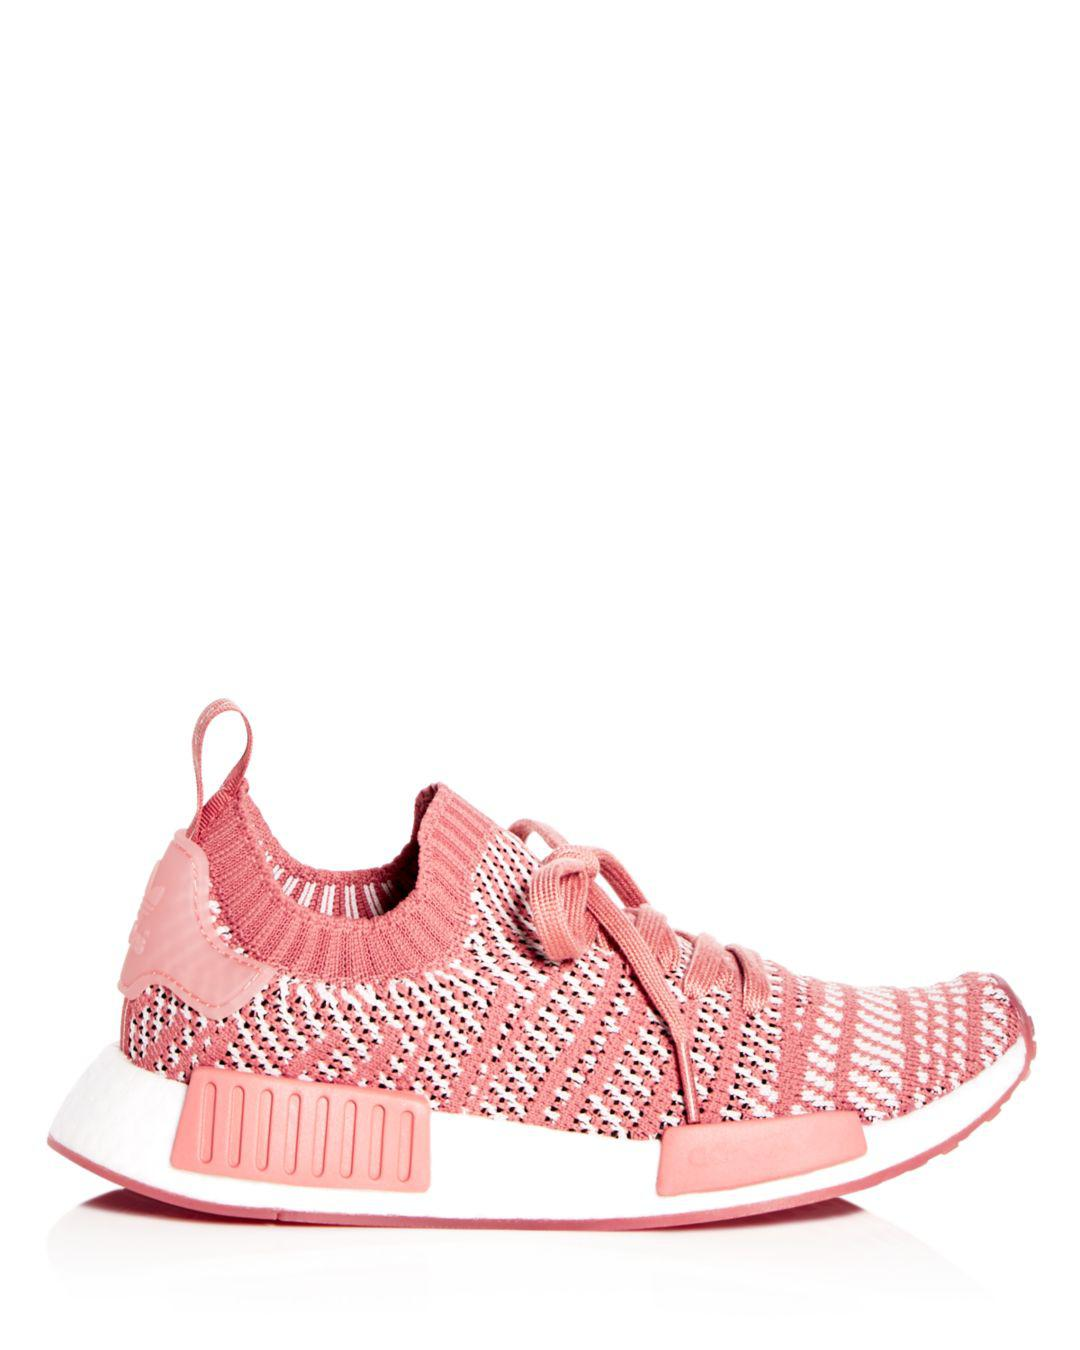 81481449a5a80 Lyst - adidas Women s Nmd R1 Knit Lace Up Sneakers in Pink